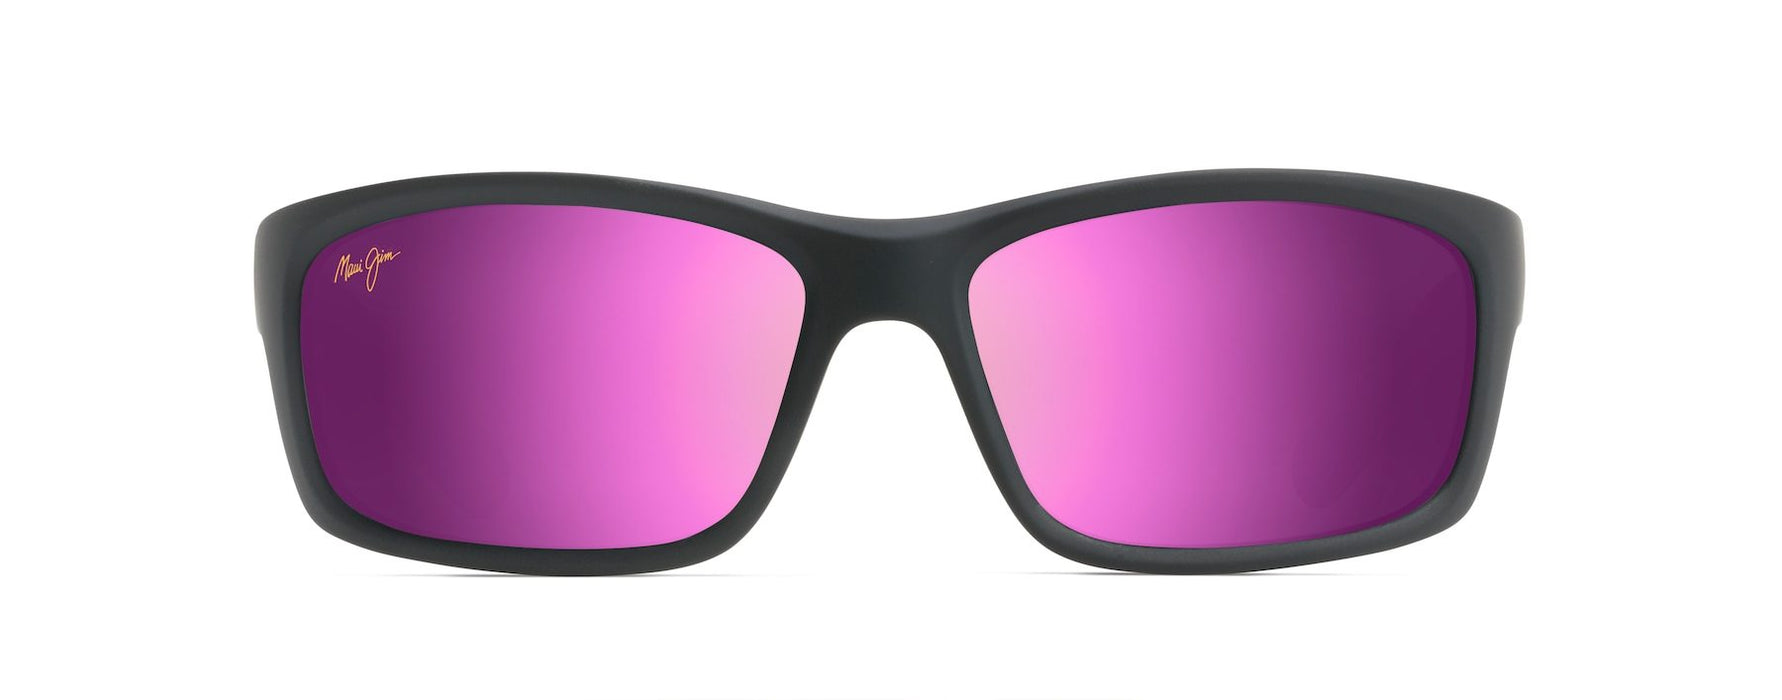 MyMaui Kanaio Coast MM766-022 Sunglasses